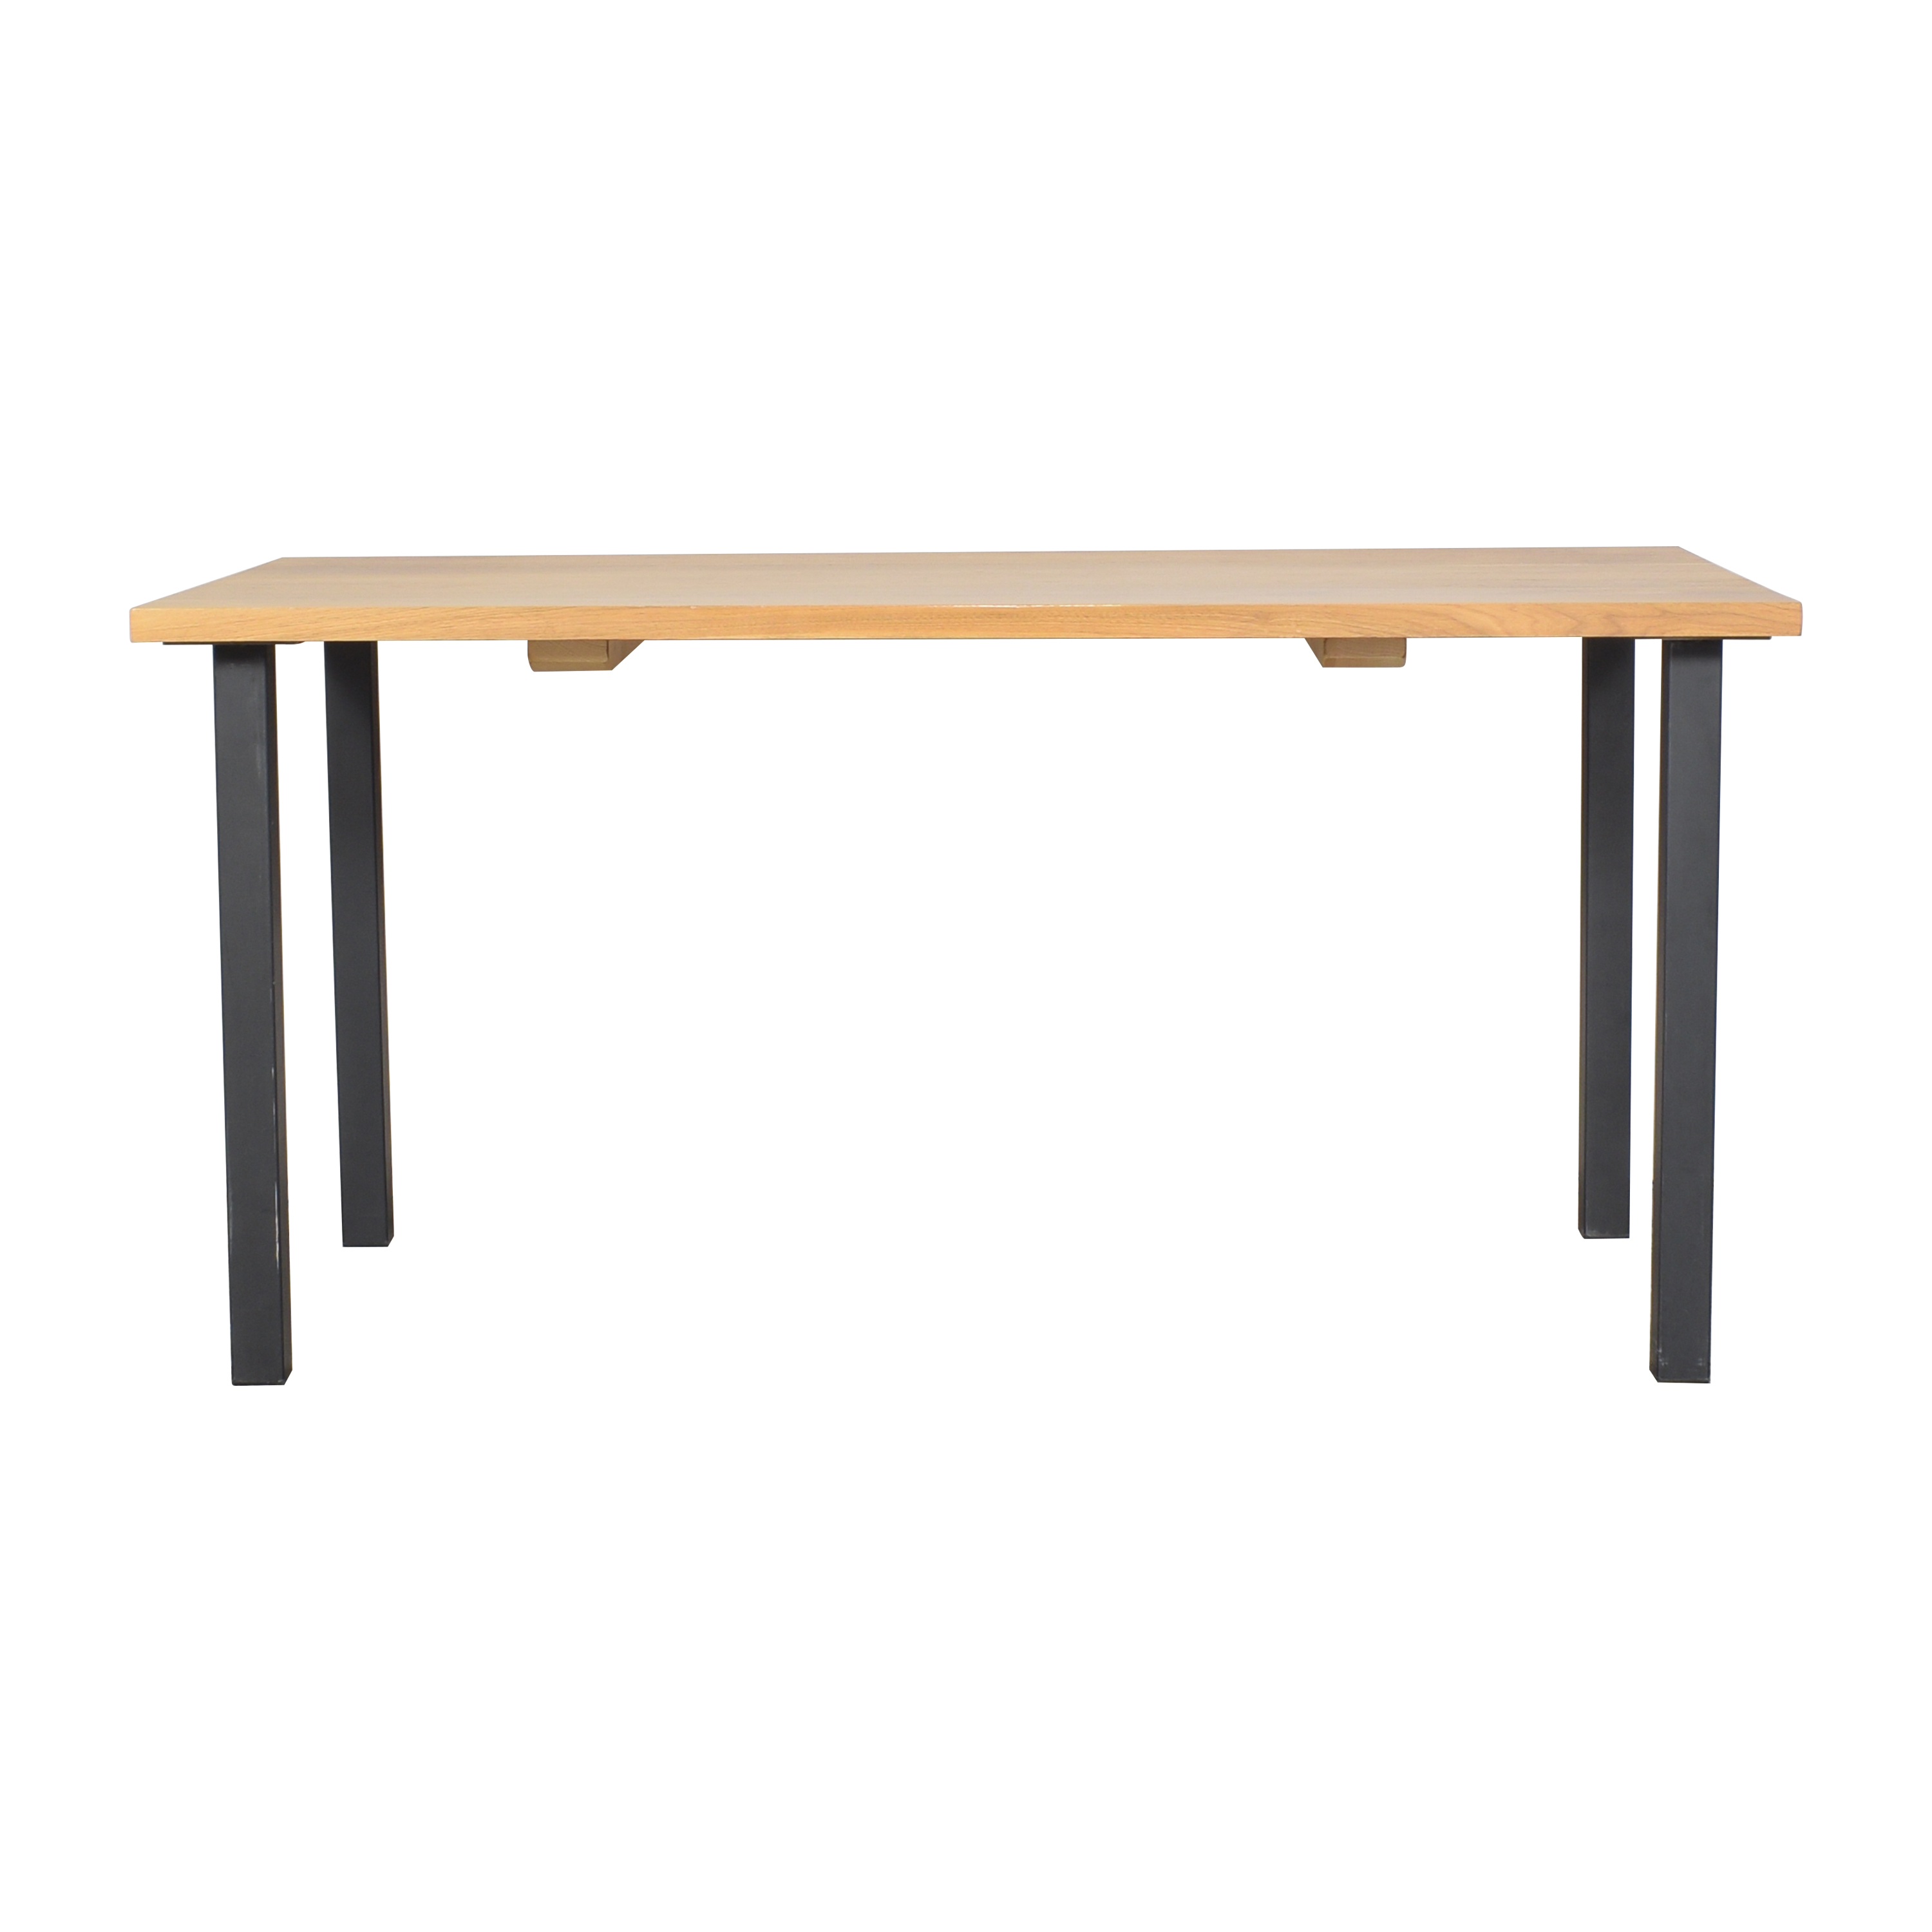 Room & Board Parsons Leg Desk sale